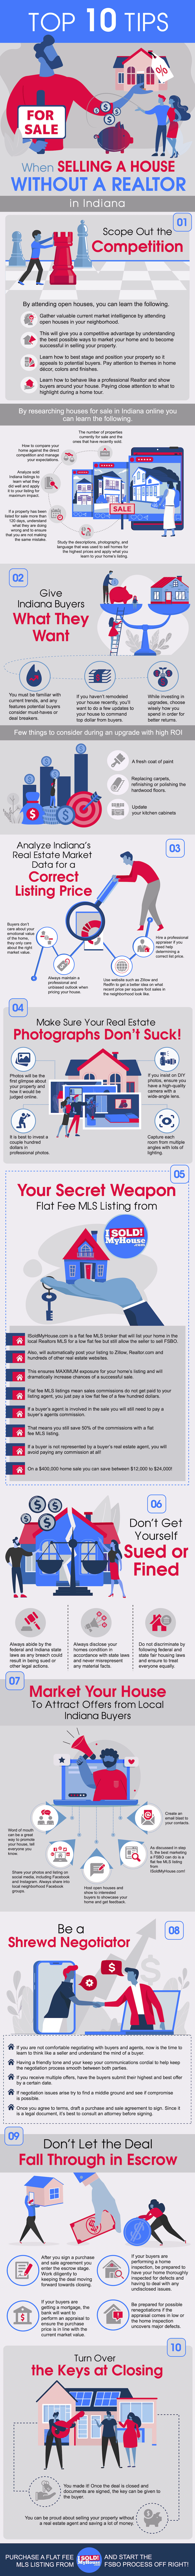 infographic of the 10 steps to sell a house in indiana without an agent